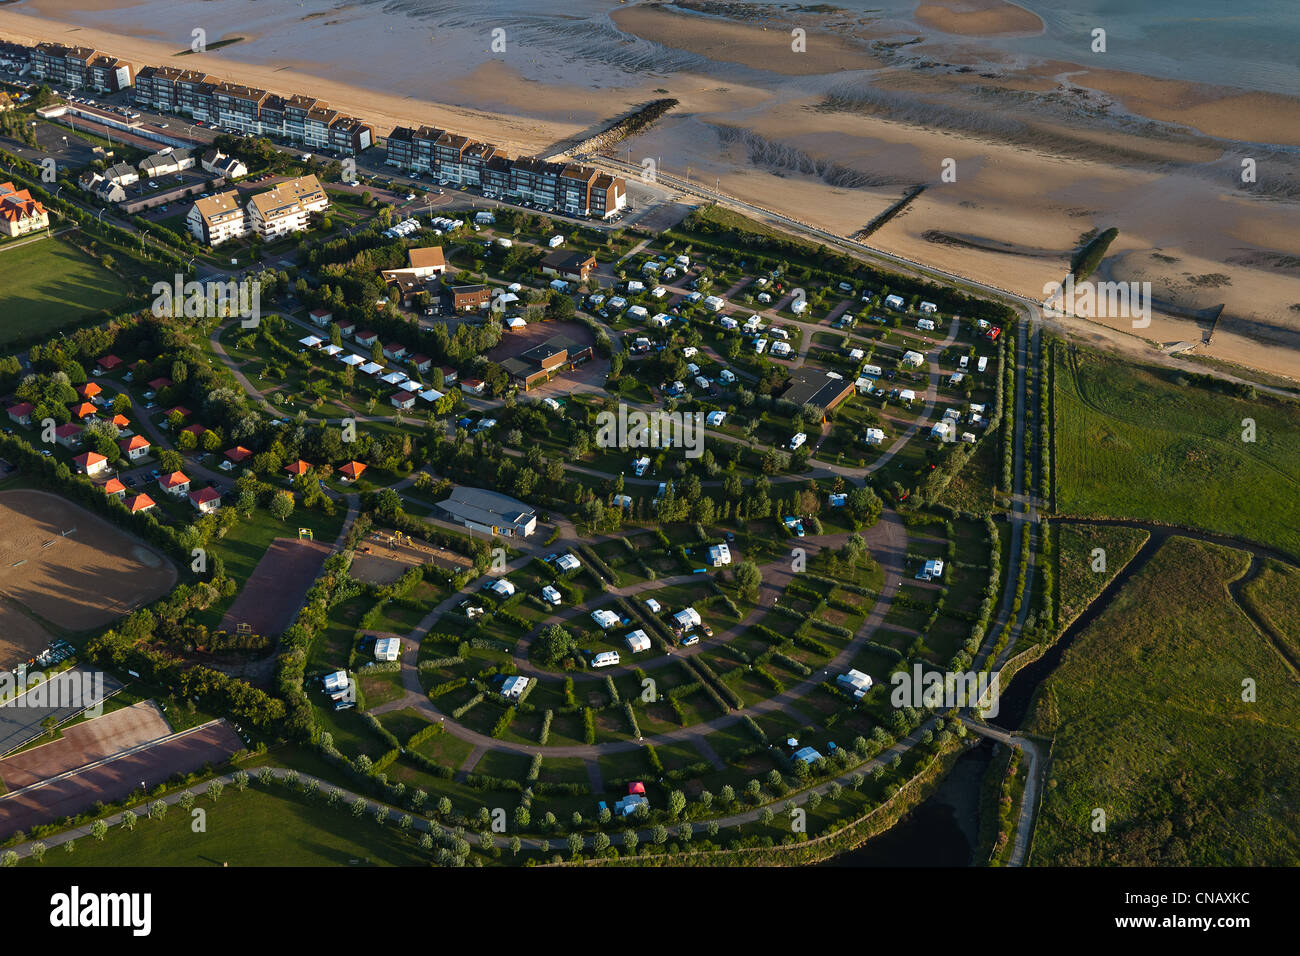 France, Calvados, Courseulles Sur Mer, Camping (aerial View)   Stock Image